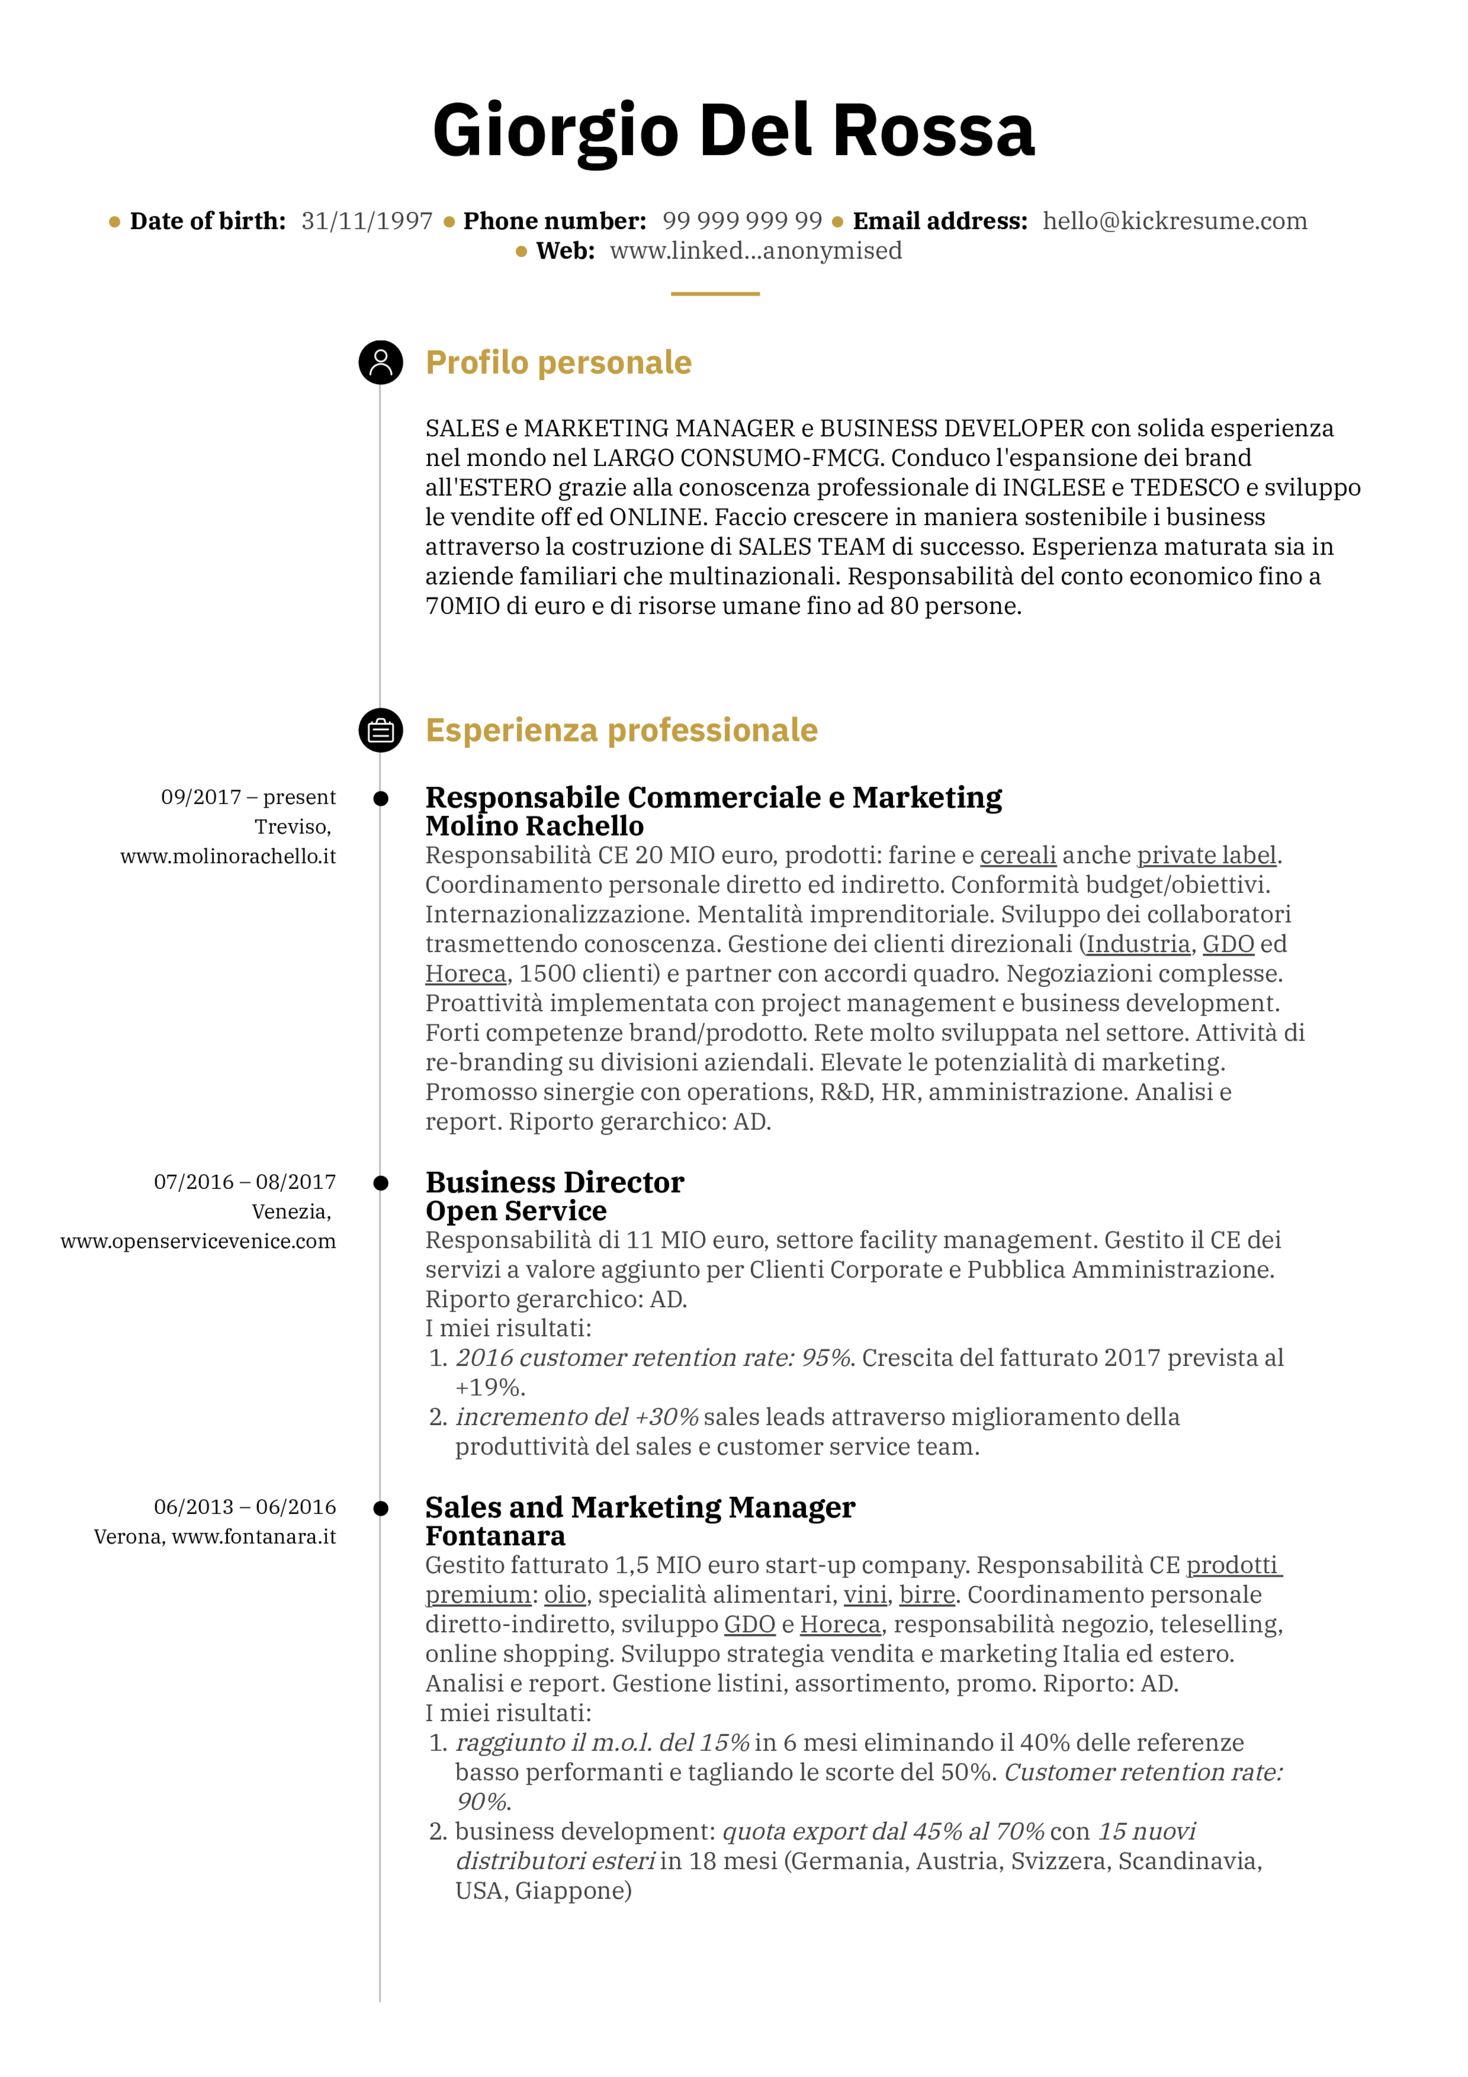 Sales and marketing manager resume example [Italian] | Resume ...